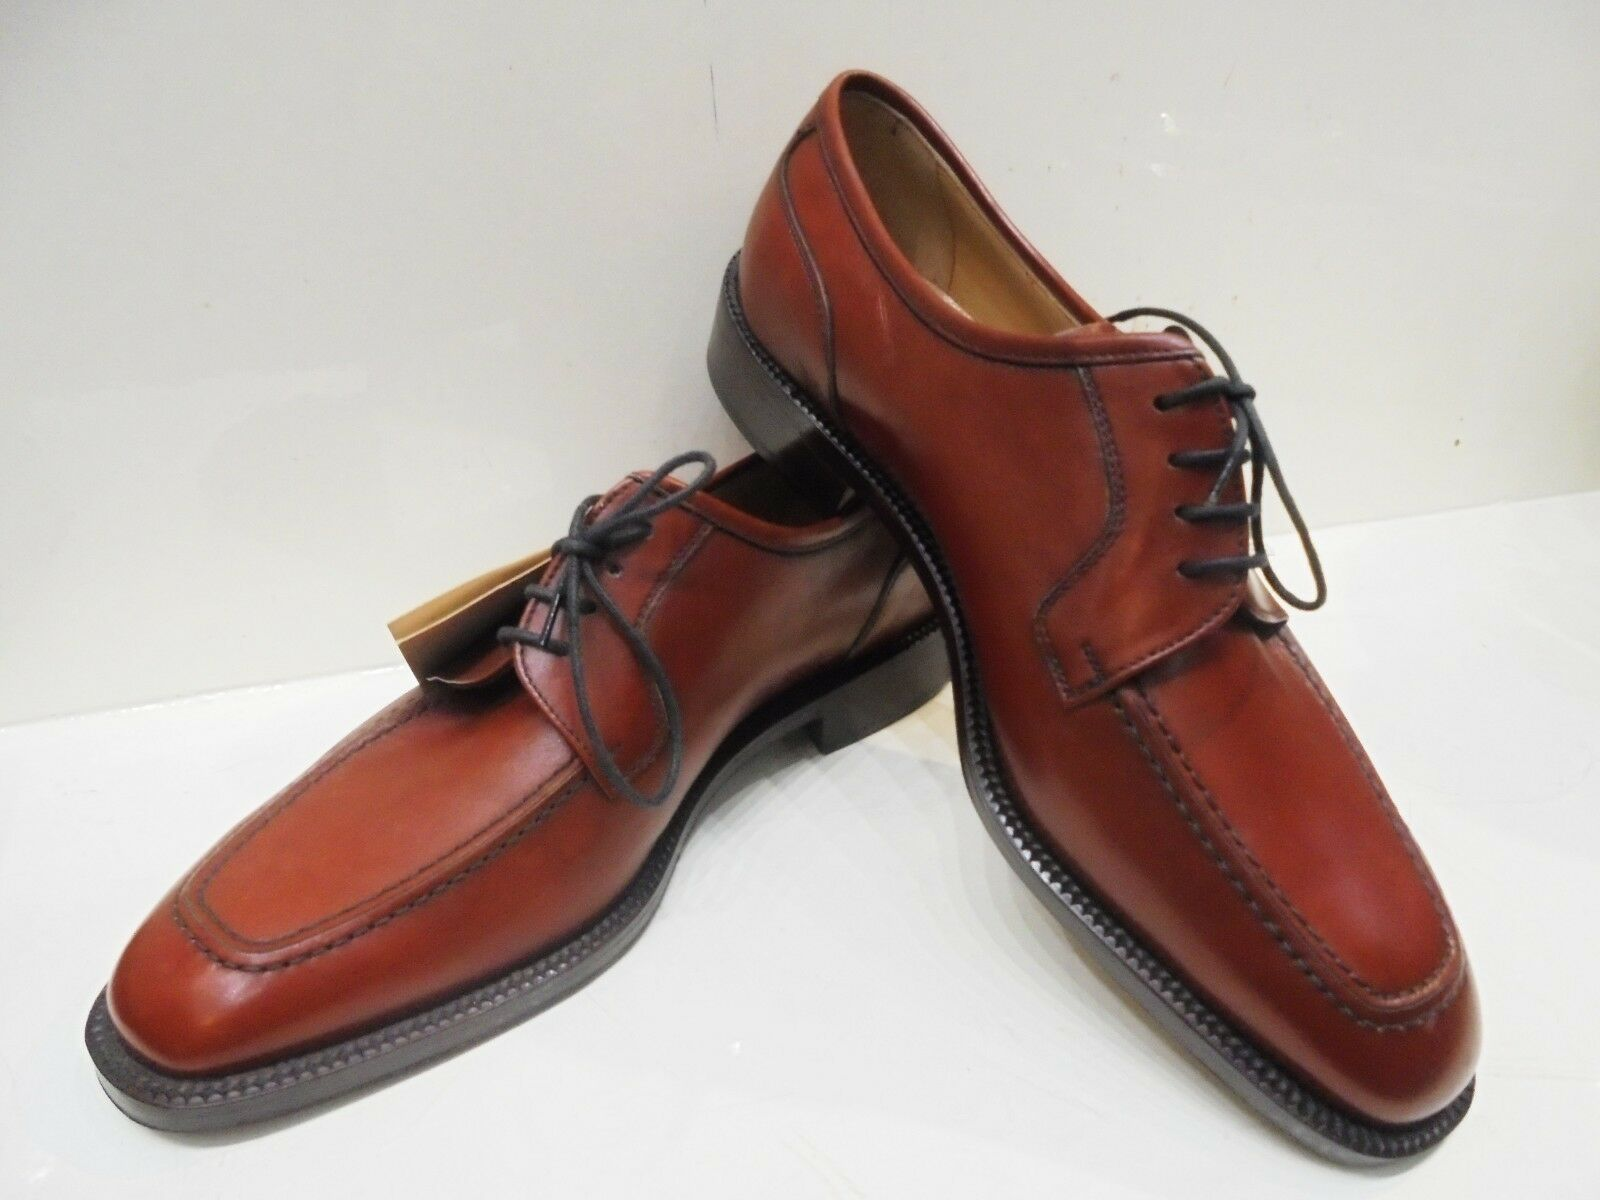 shoes men HERRY SAX CUIR BRUN - MADE IN ITALY ARTISANAT HAUTE QUALITÉ